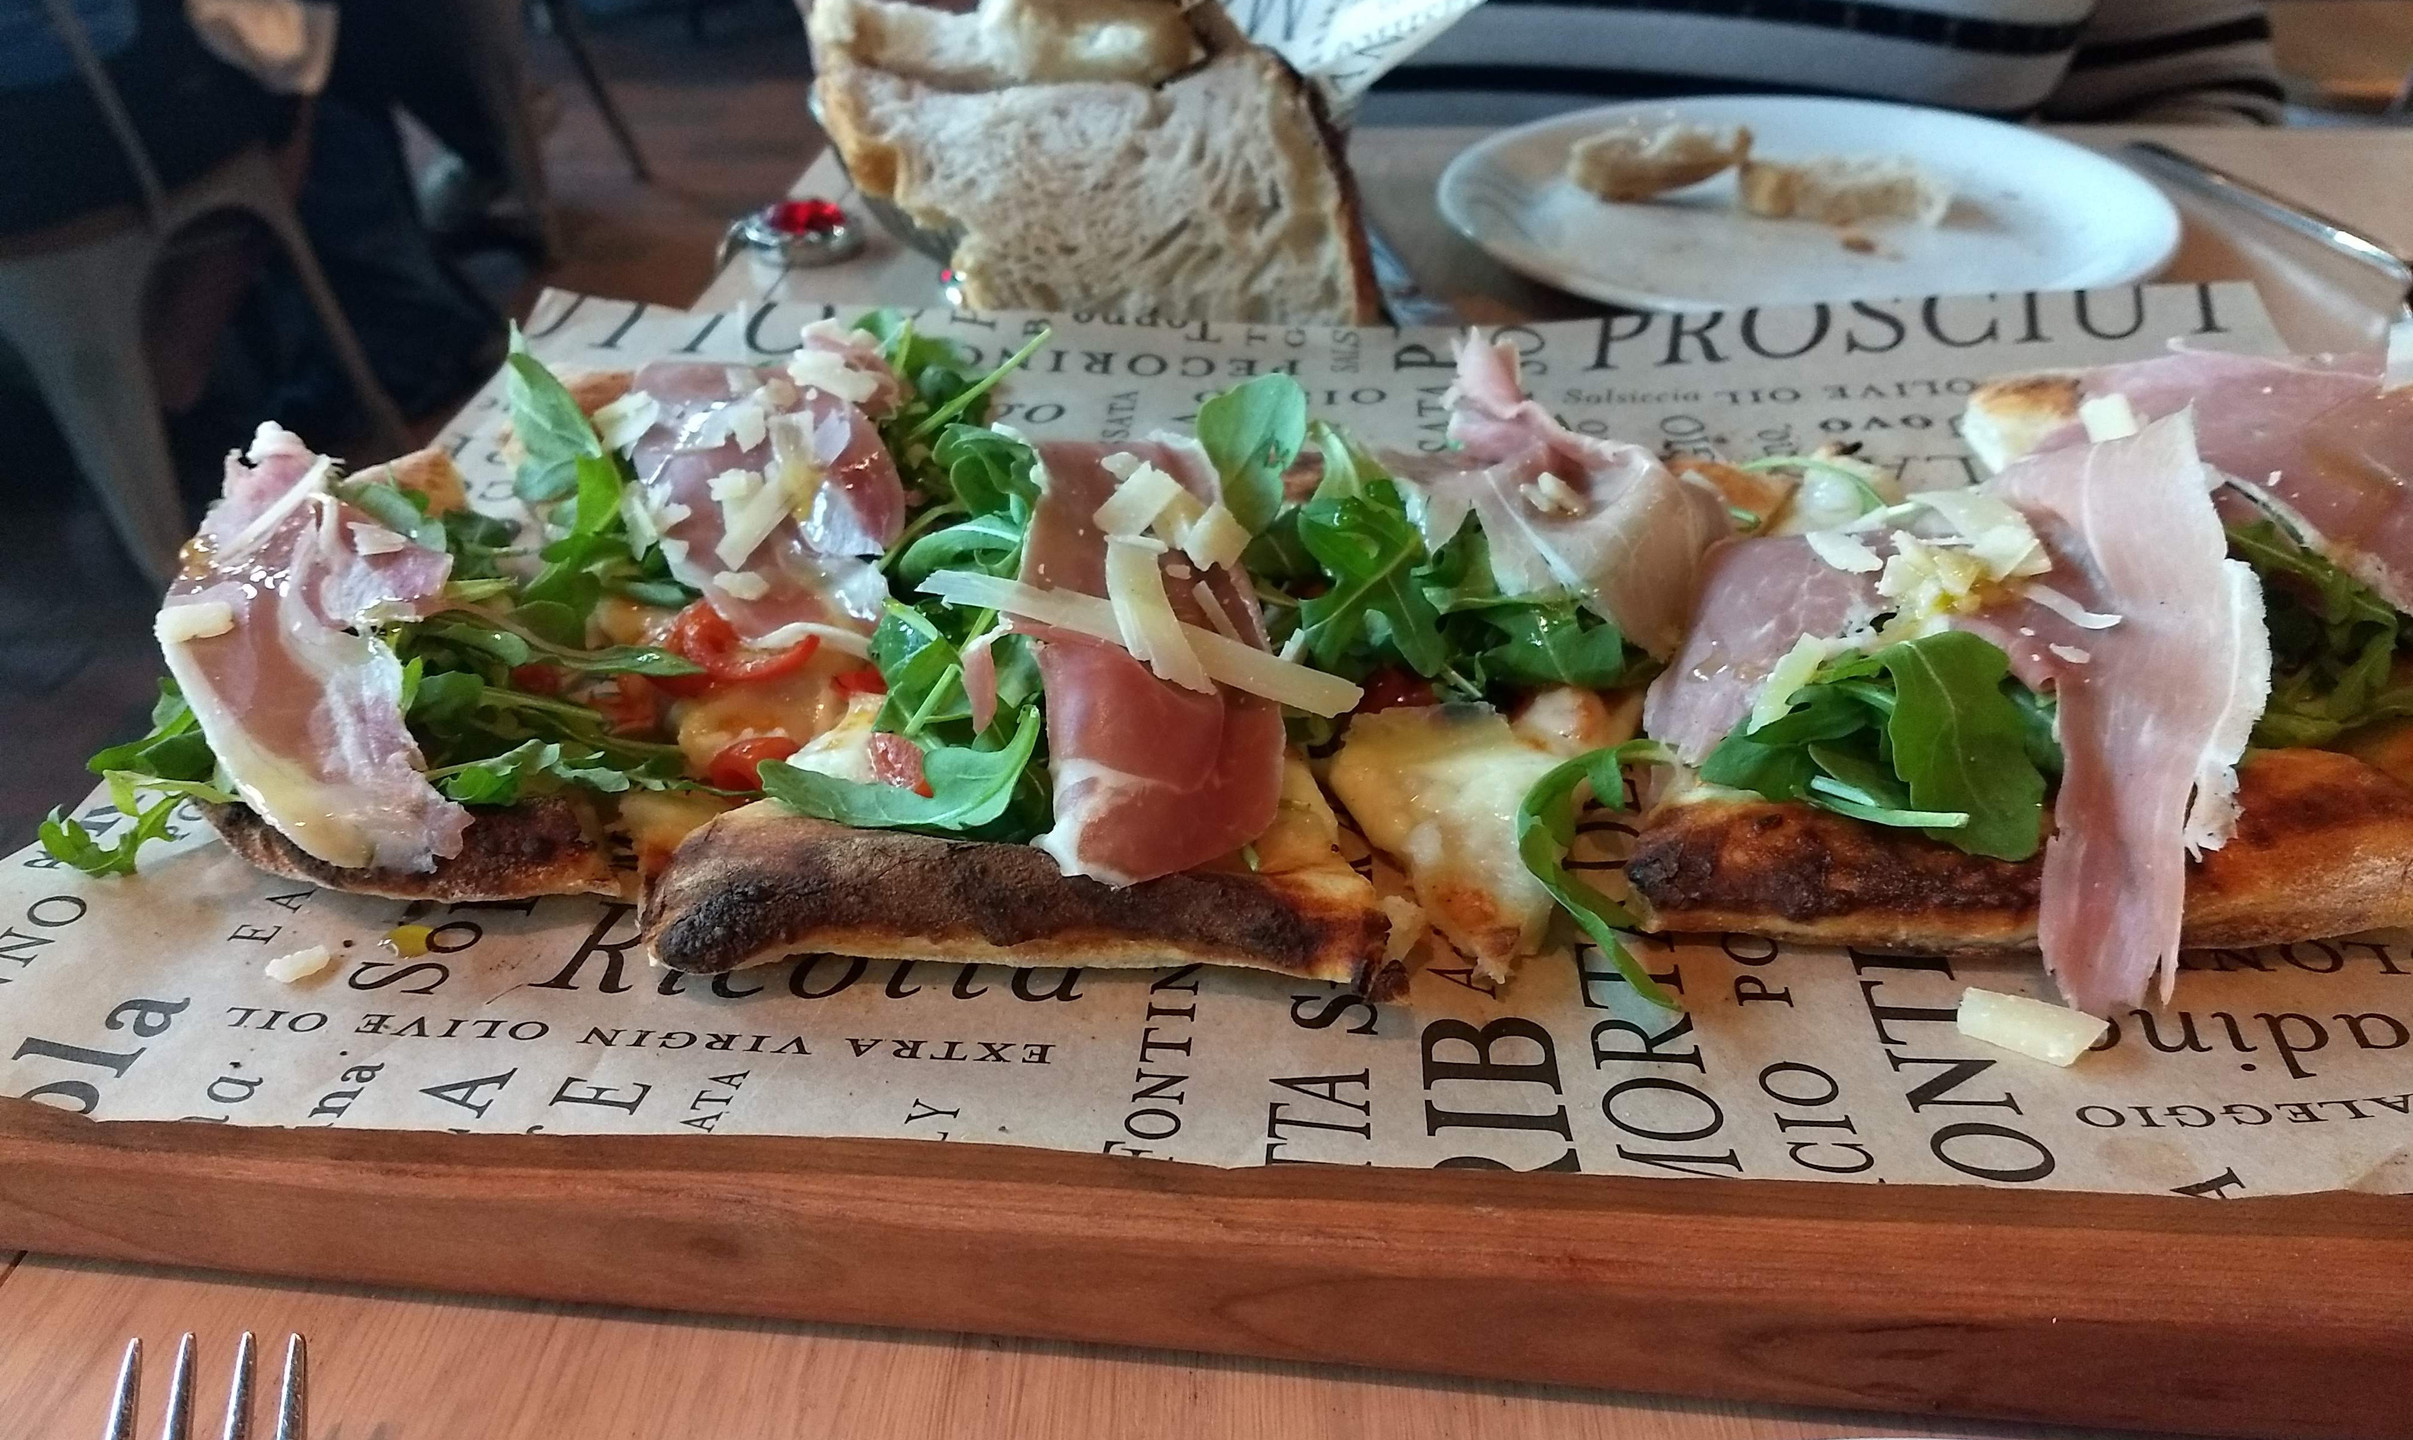 Our delicious pizza!